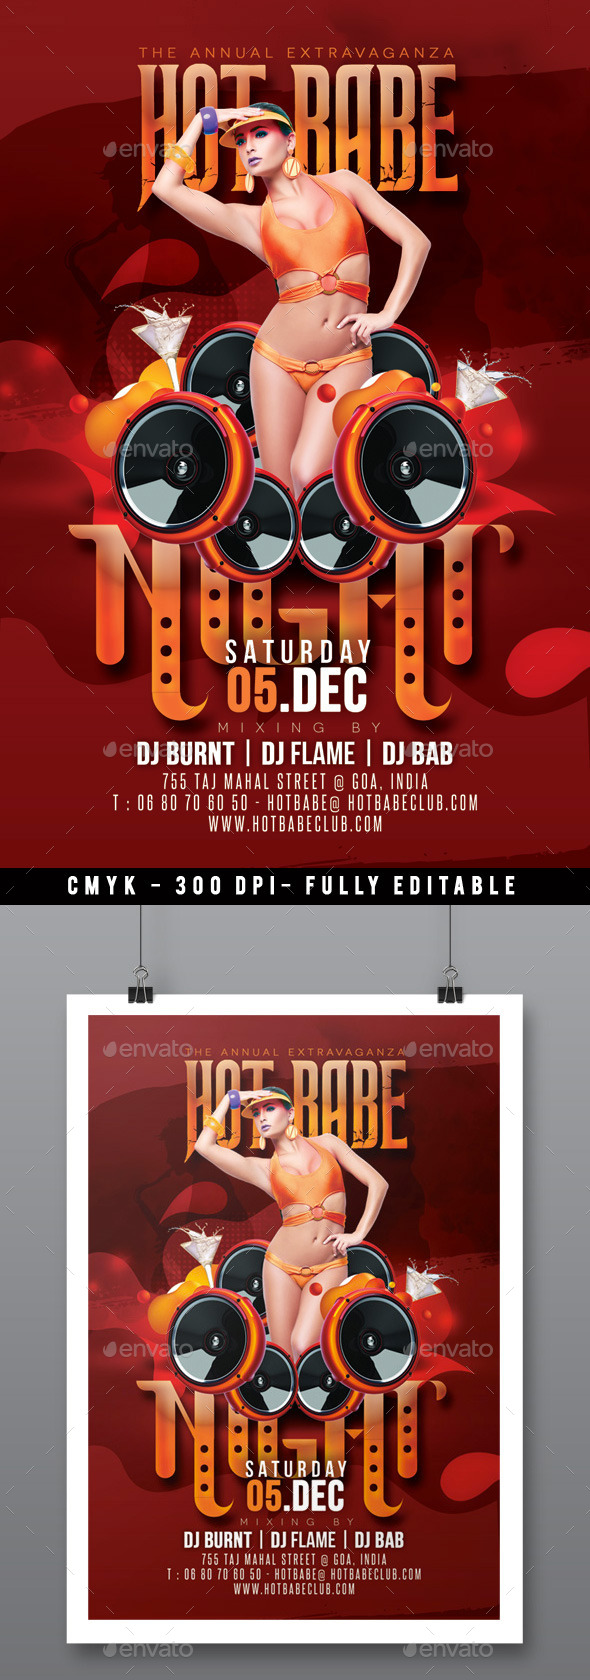 GraphicRiver Muy Caliente Hot Babe Party In Music Club 9385926